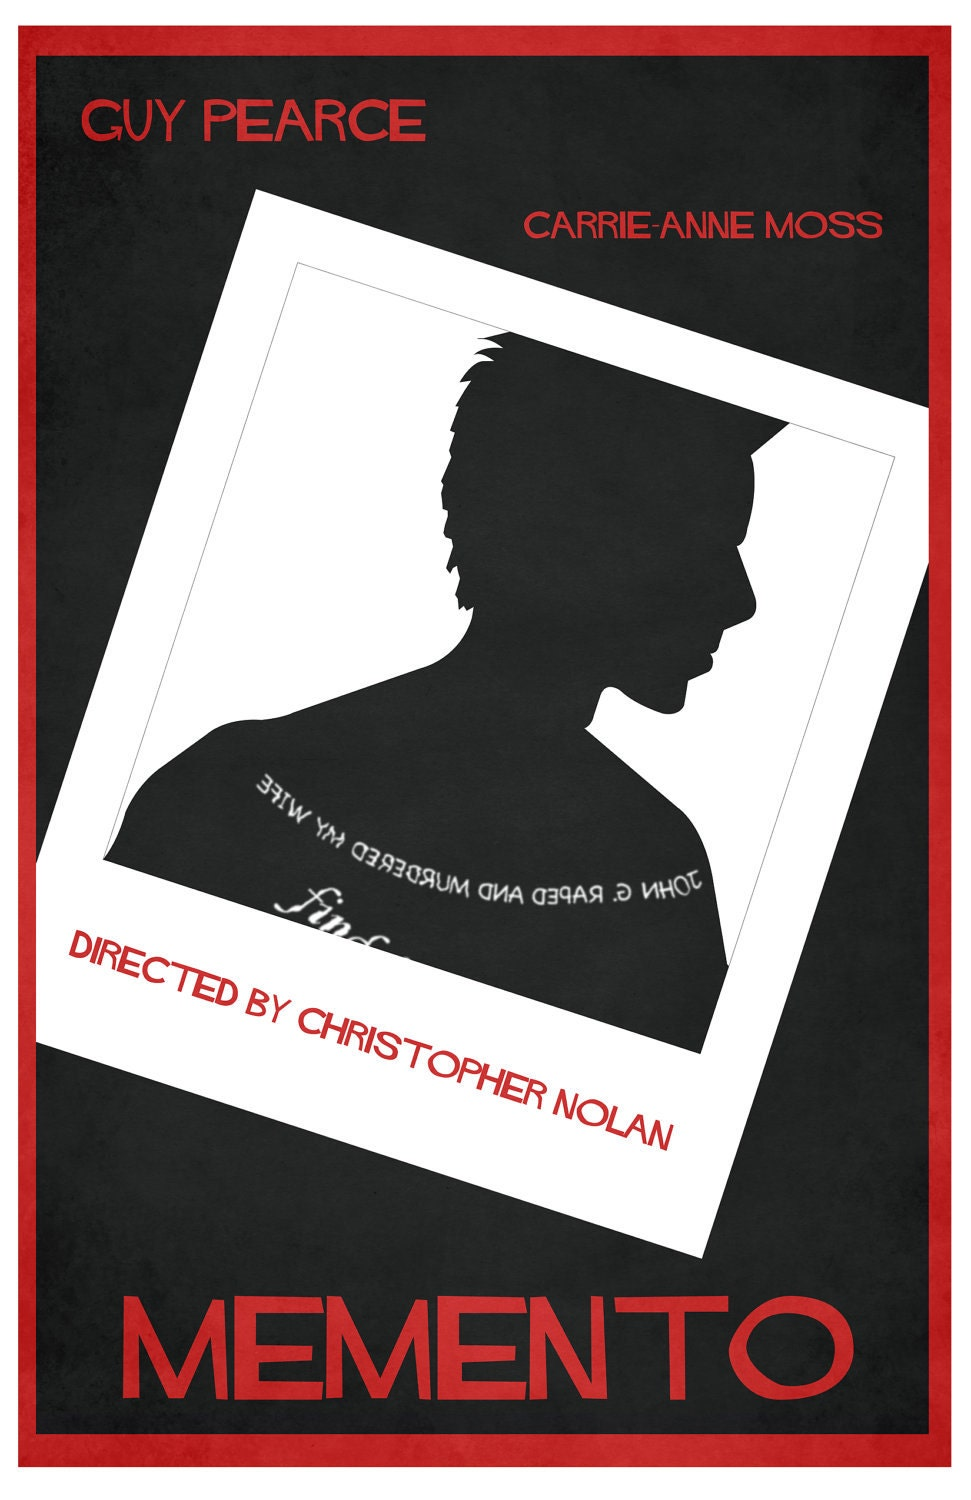 memento the movie A o scot reviews movie memento, written and directed by christopher nolan guy pearce stars photo (m.